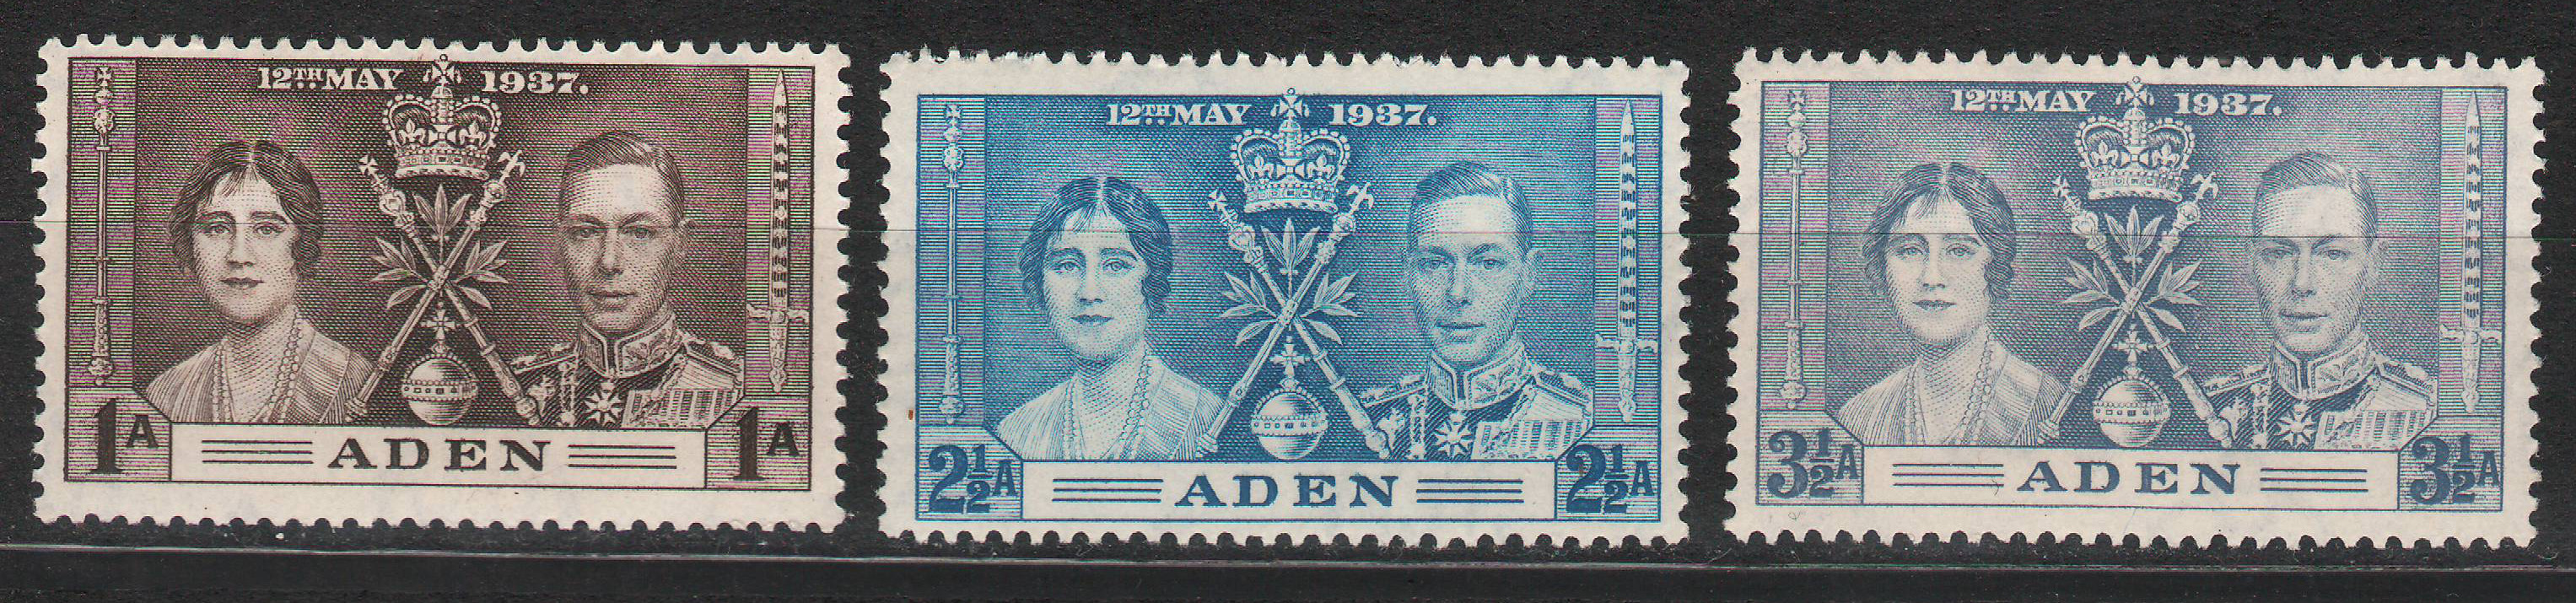 Aden - 1937 - Coronation MH * complete set of 3